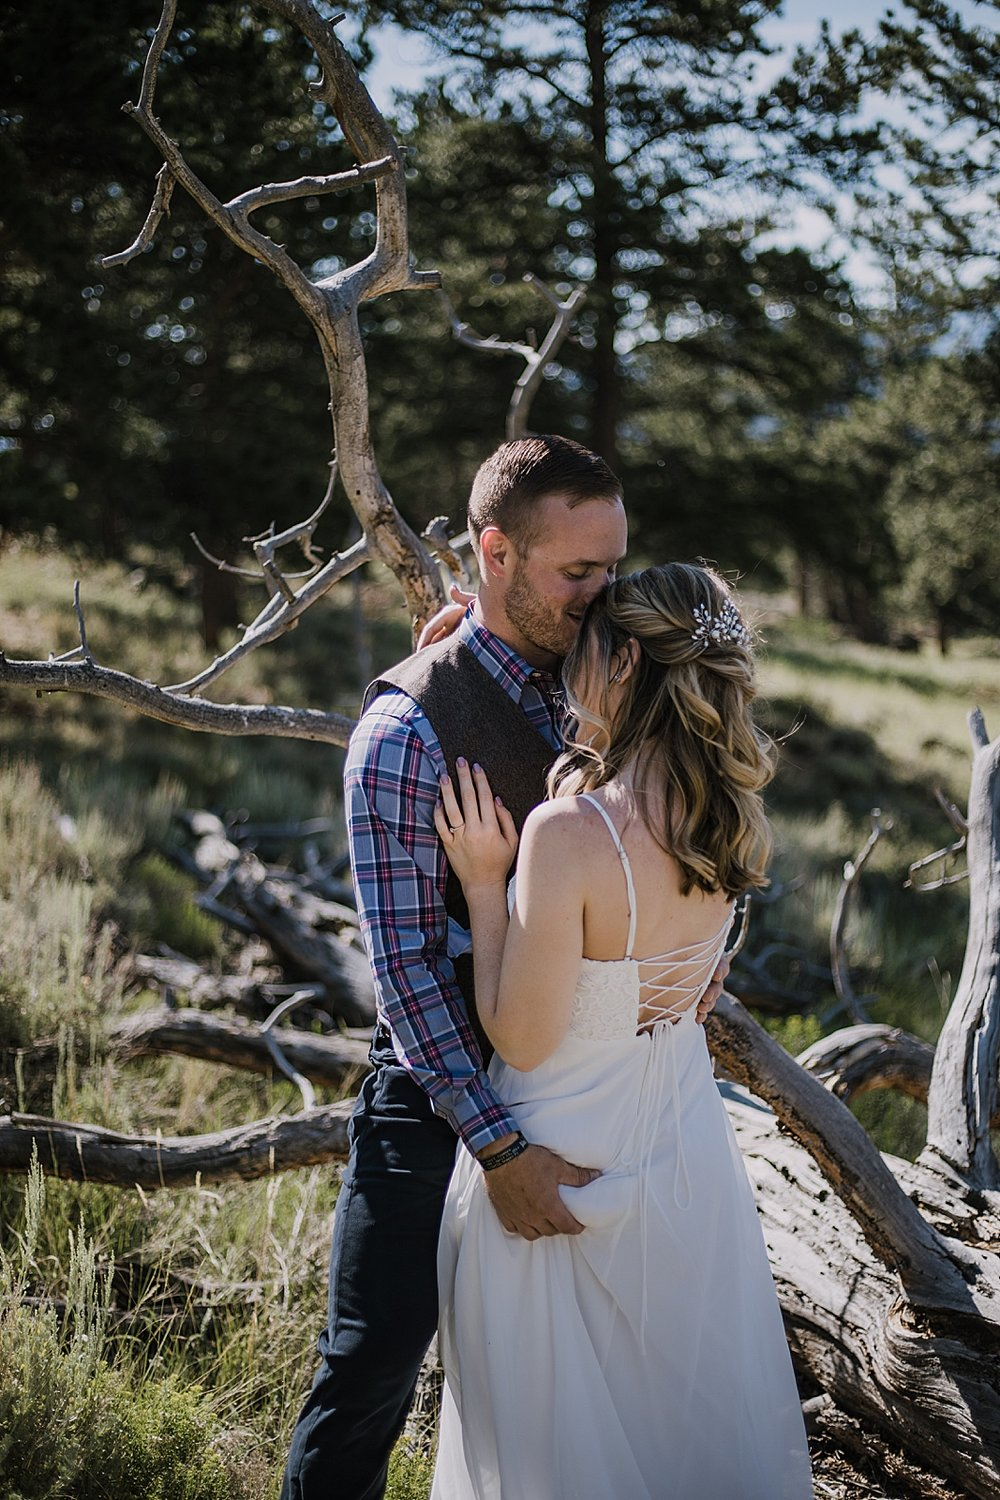 groom butt grab, RMNP elopement ceremony, rocky mountain national park elopement, 3M curves elopement, self solemnizing, self solemnization, long's peak, summer hiking elopement, estes park elopement